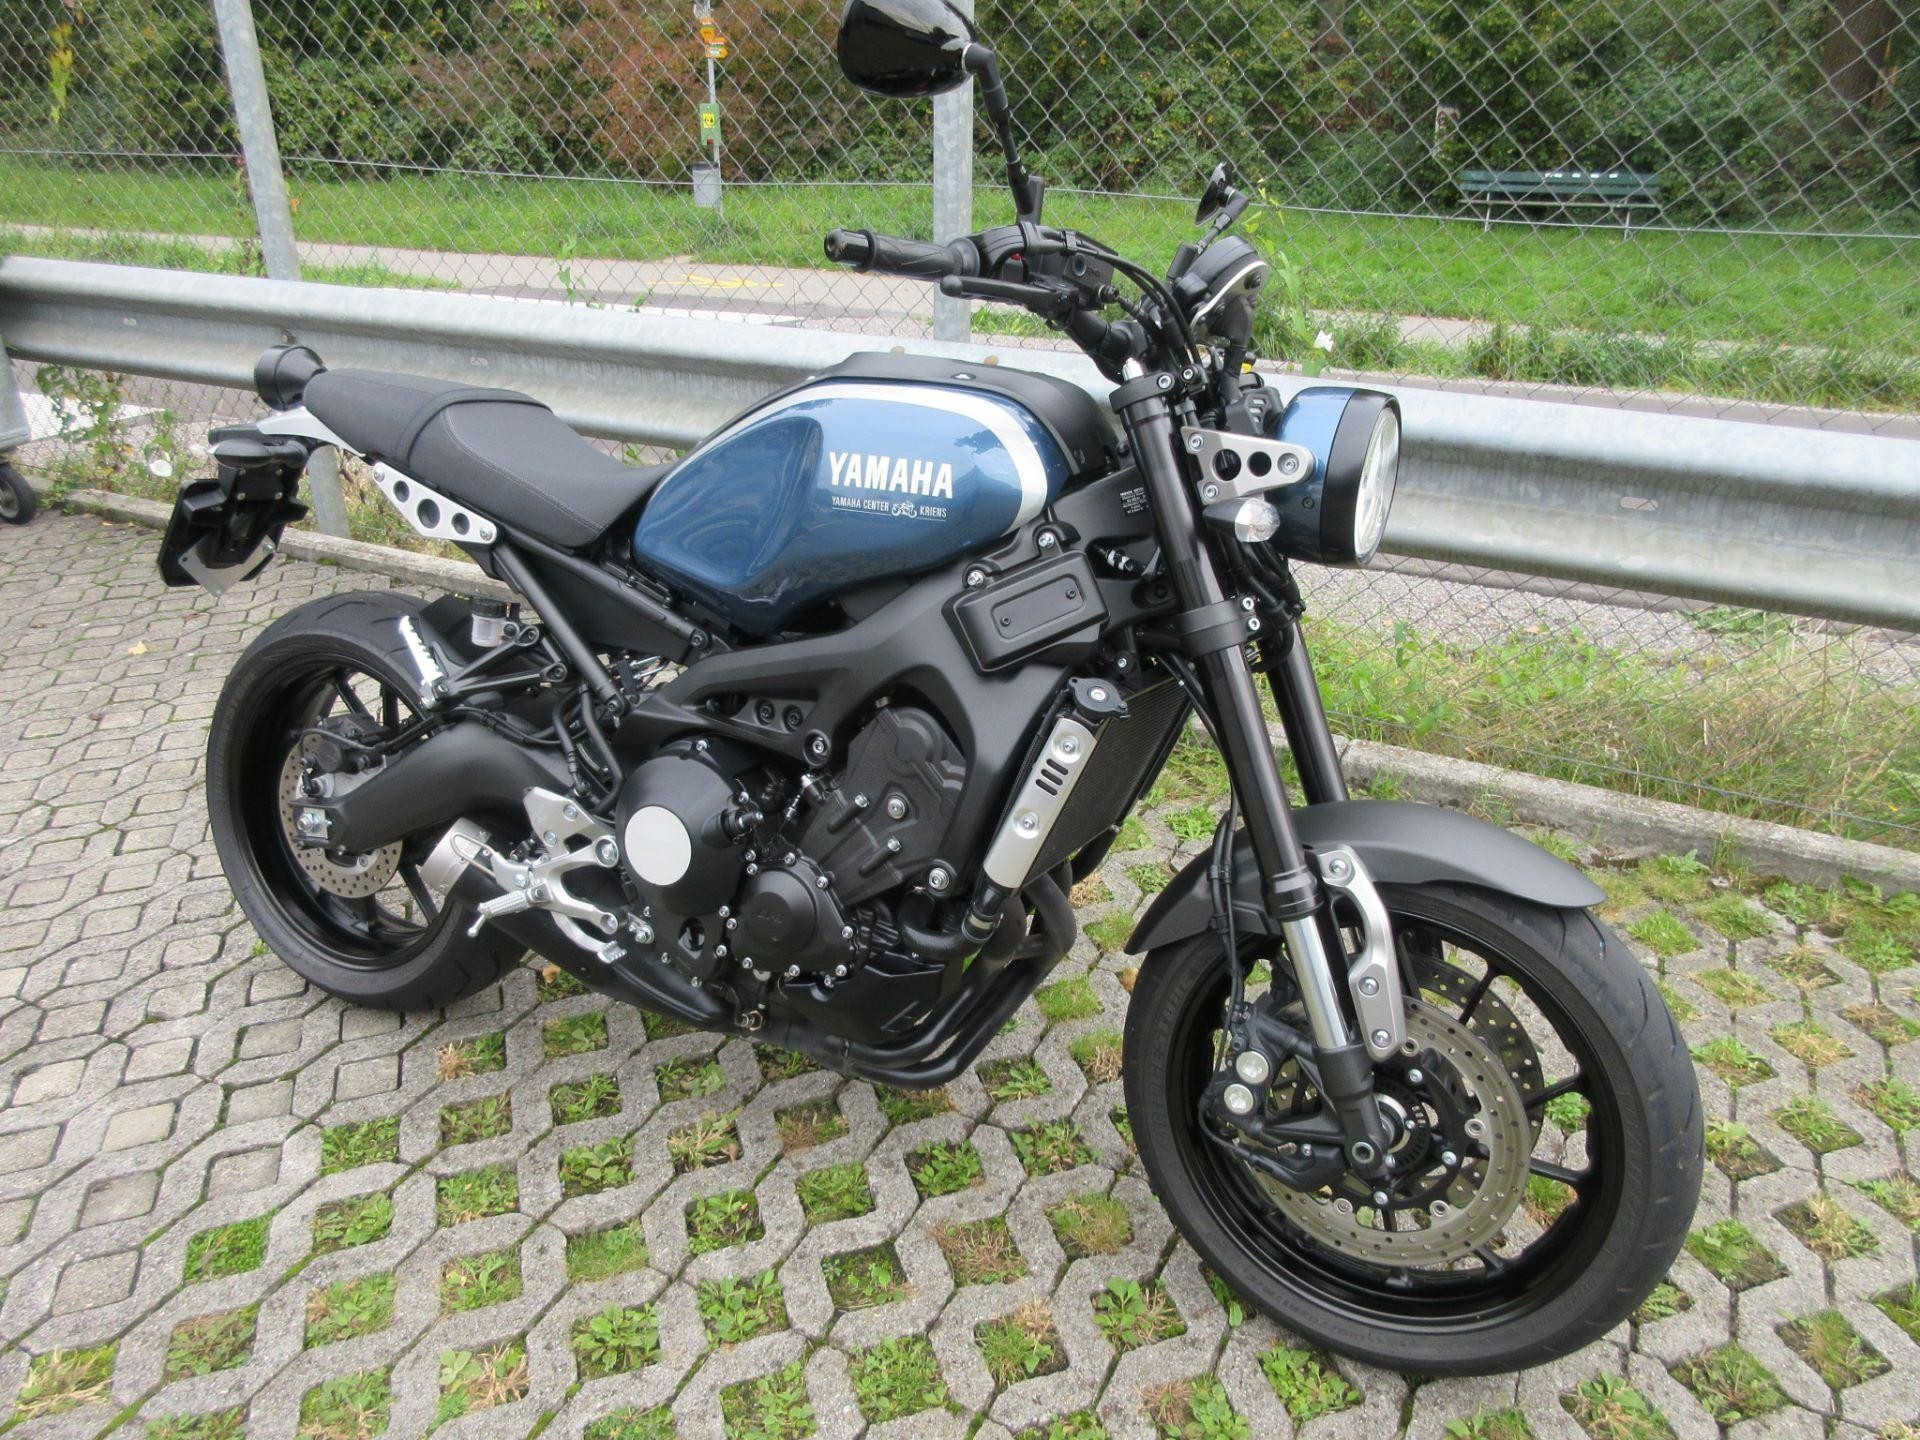 motorrad occasion kaufen yamaha xsr 900 abs yamaha center. Black Bedroom Furniture Sets. Home Design Ideas